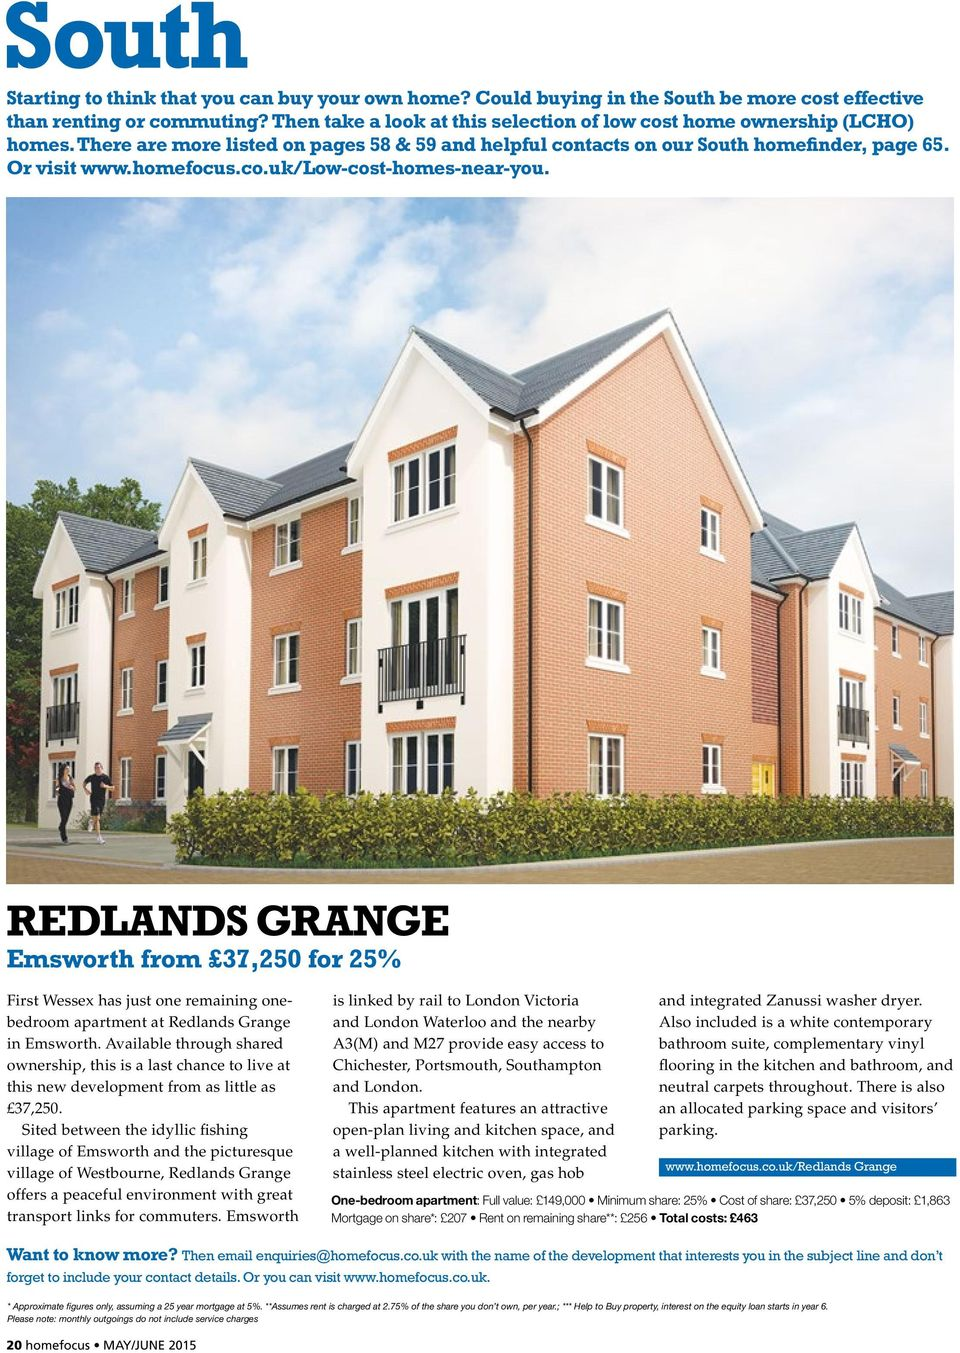 REDLANDS GRANGE Emsworth from 37,250 for 25% First Wessex has just one remaining onebedroom apartment at Redlands Grange in Emsworth.